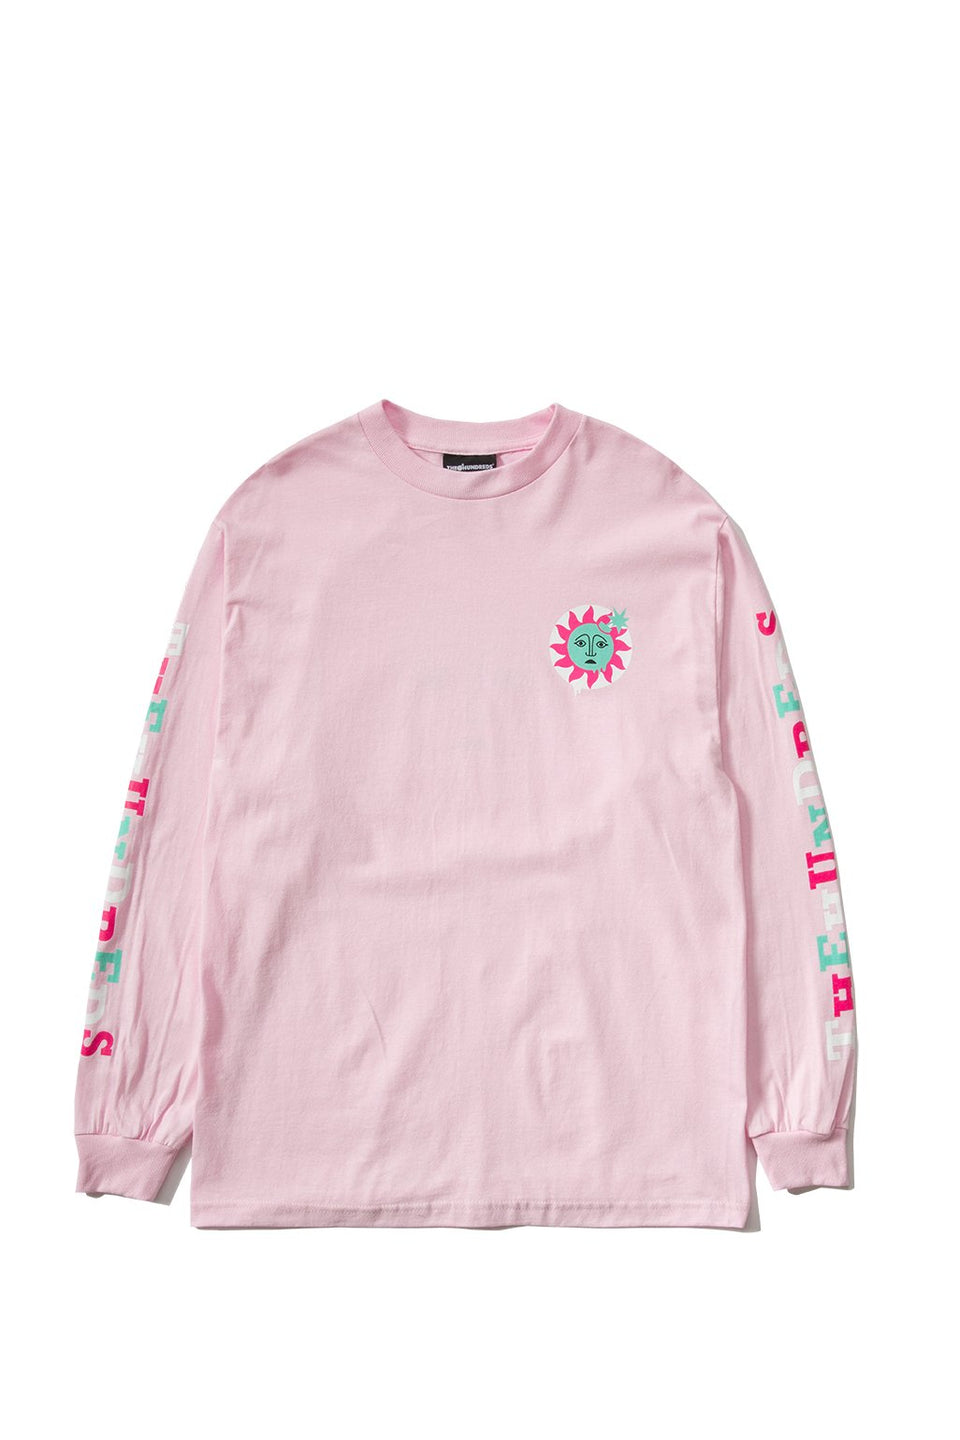 Global Warning L/S Shirt